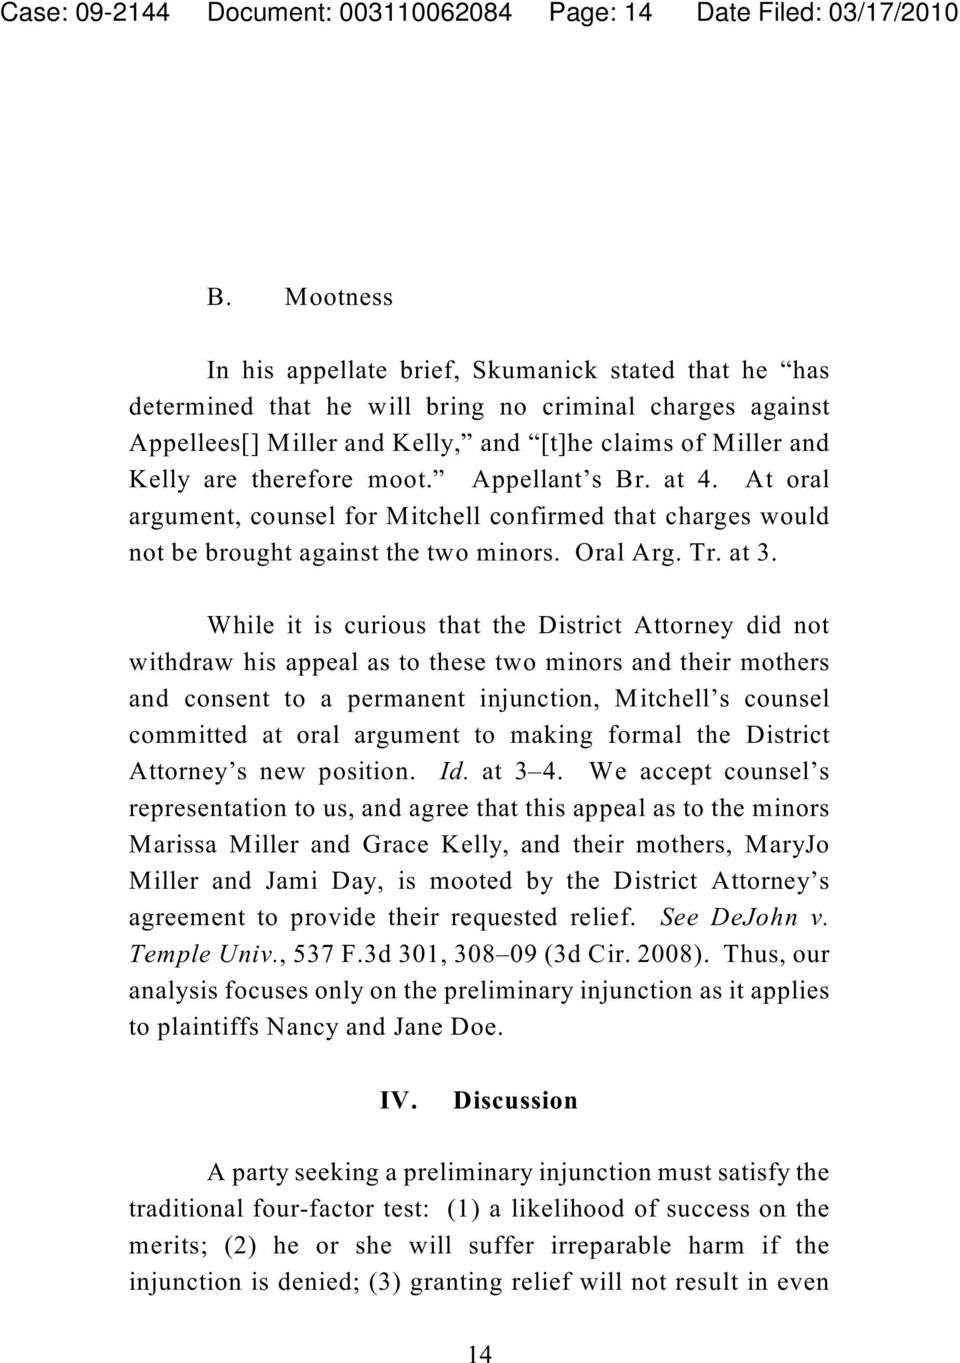 therefore moot. Appellant s Br. at 4. At oral argument, counsel for Mitchell confirmed that charges would not be brought against the two minors. Oral Arg. Tr. at 3.